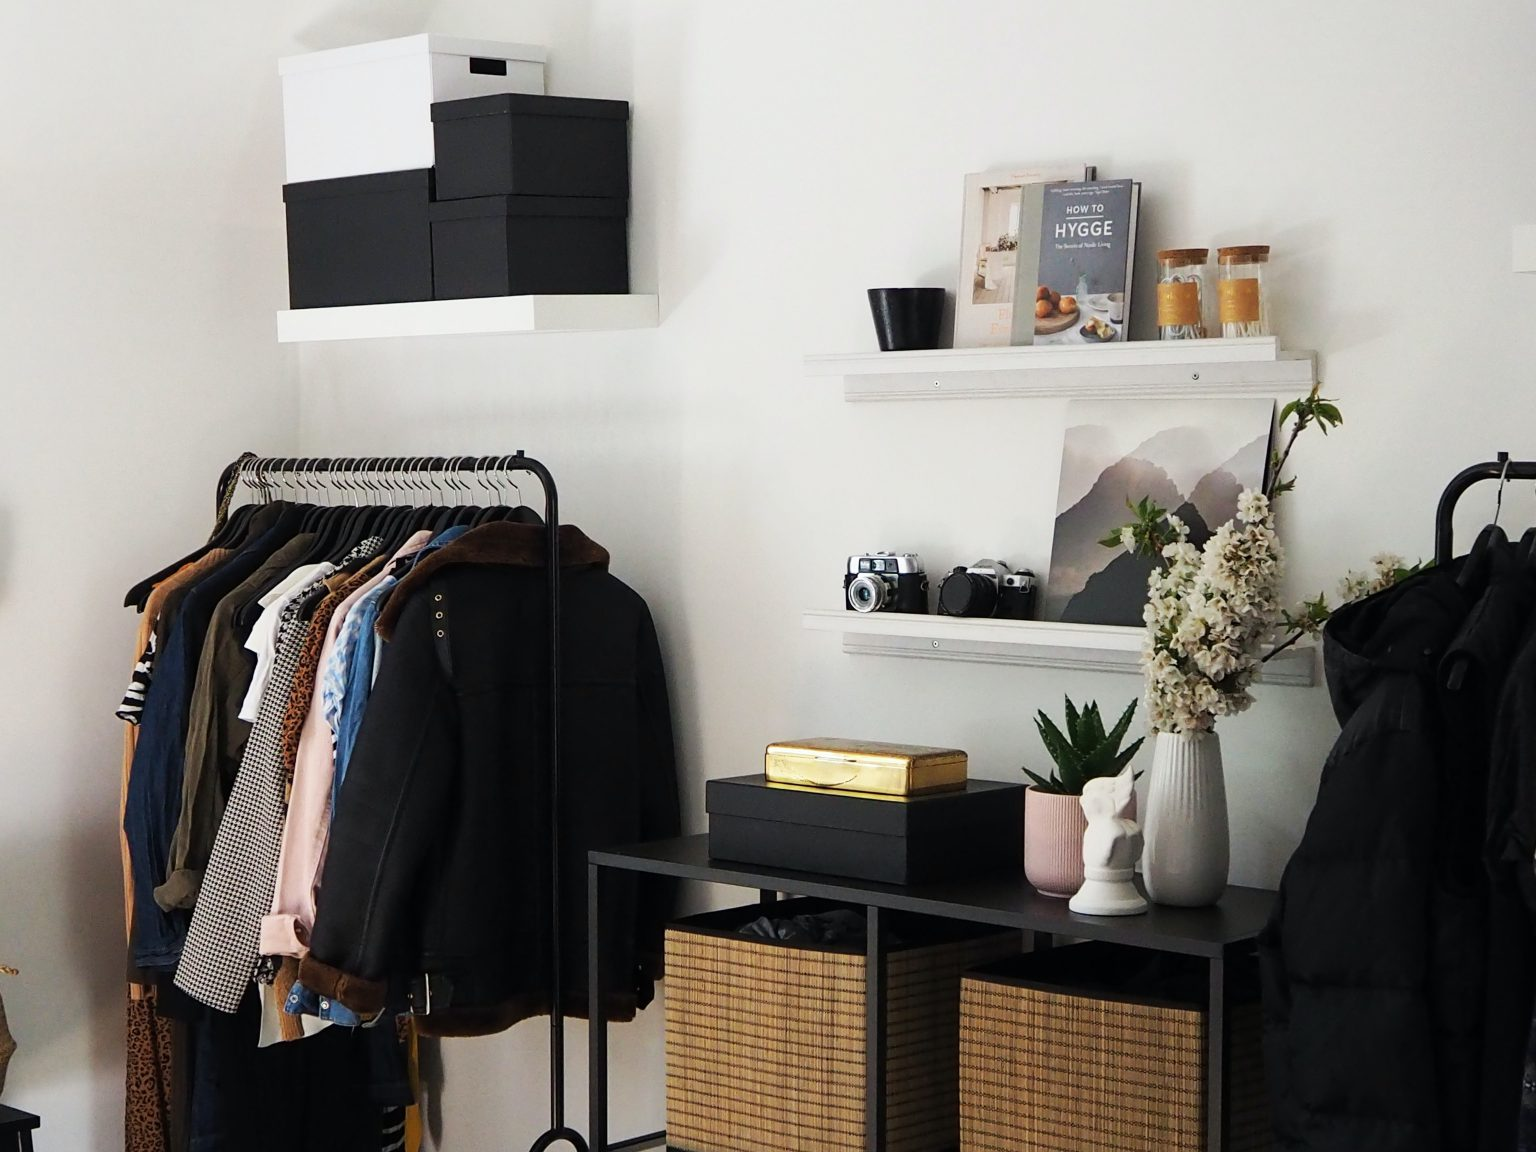 How to declutter your home in 30 minutes